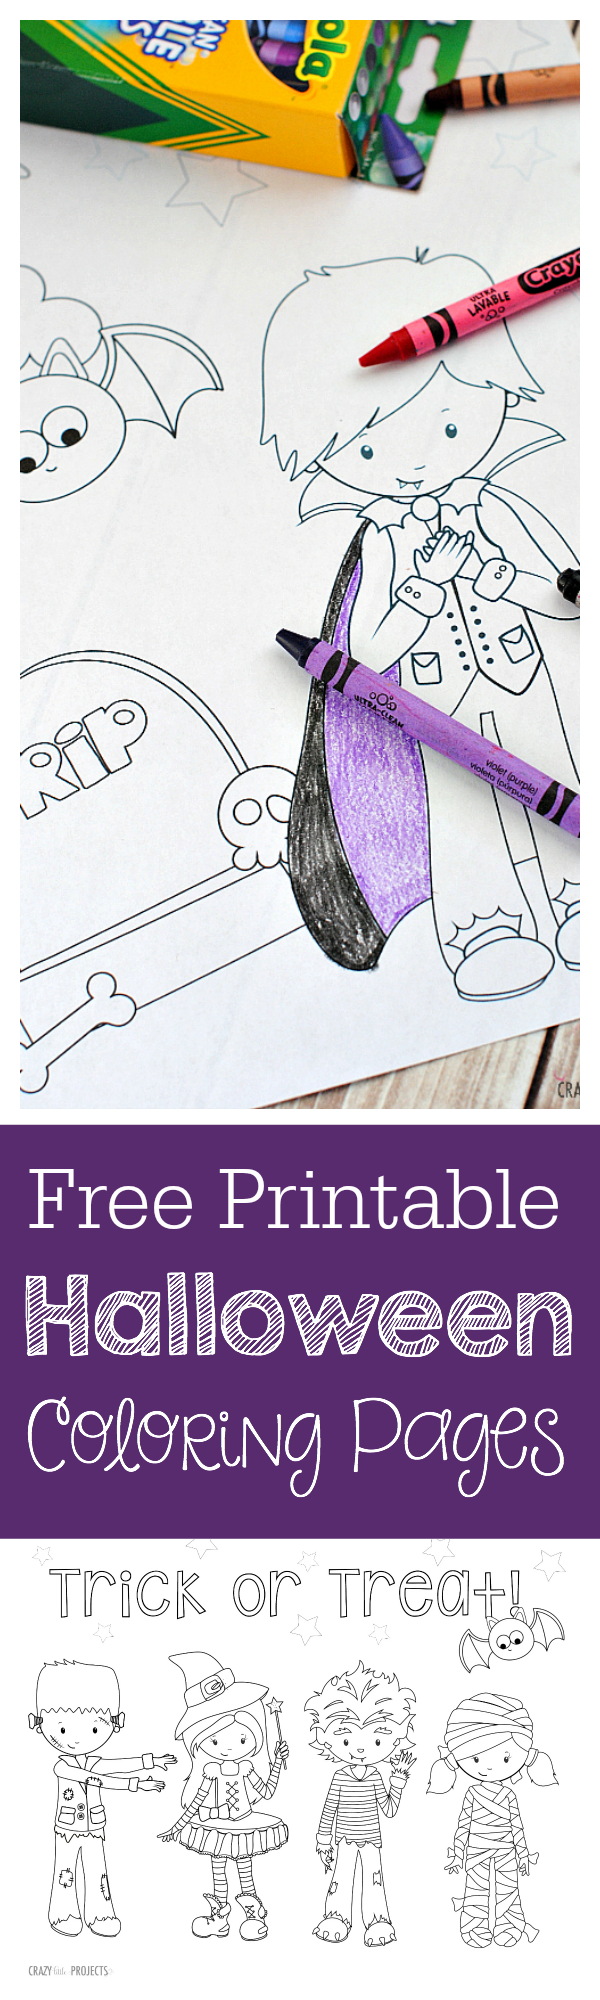 Free Printable Halloween Coloring Pages-These cute Halloween coloring pages are so cute and all you've got to do is print! #Halloween #kids #coloringpages